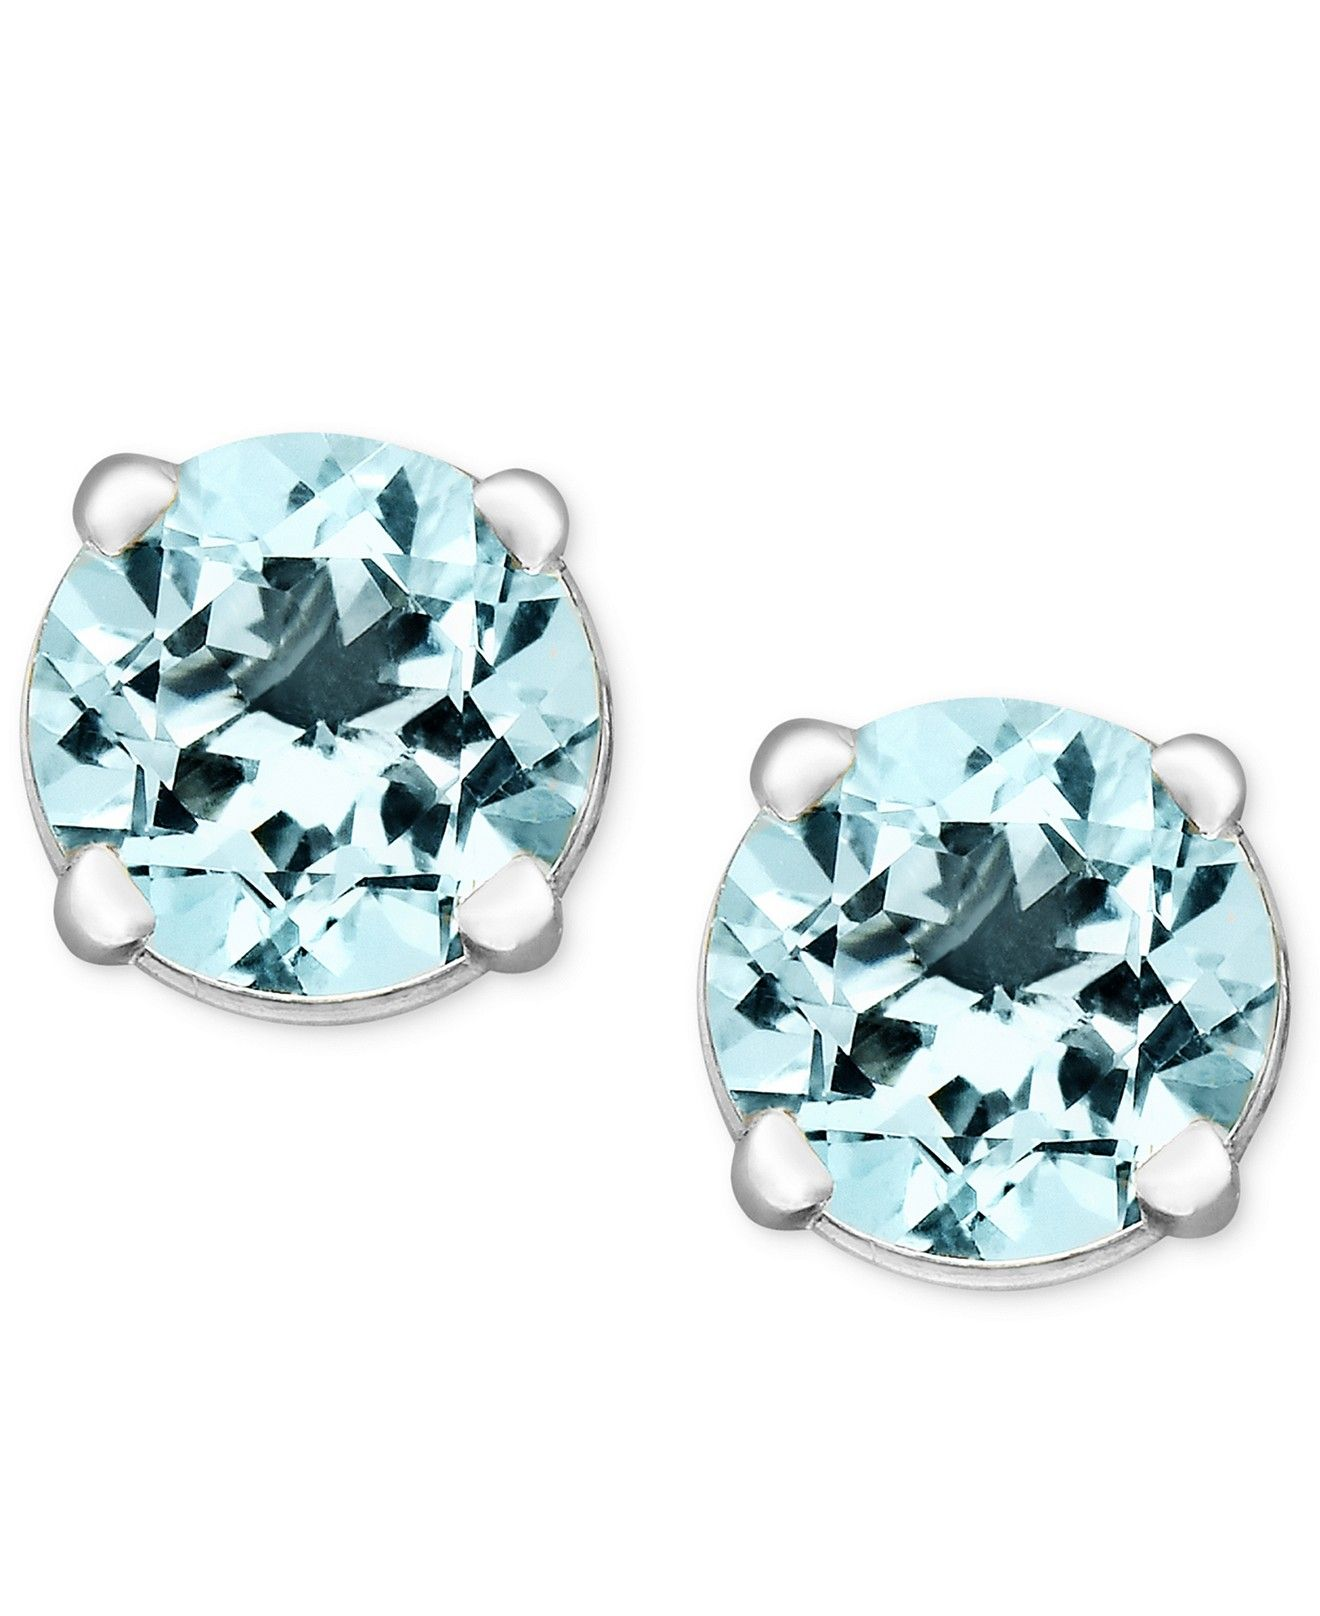 online earrings at rsp aquamarine ewa com pdp brilliant main buyewa aqua cut blue johnlewis white gold marine stud